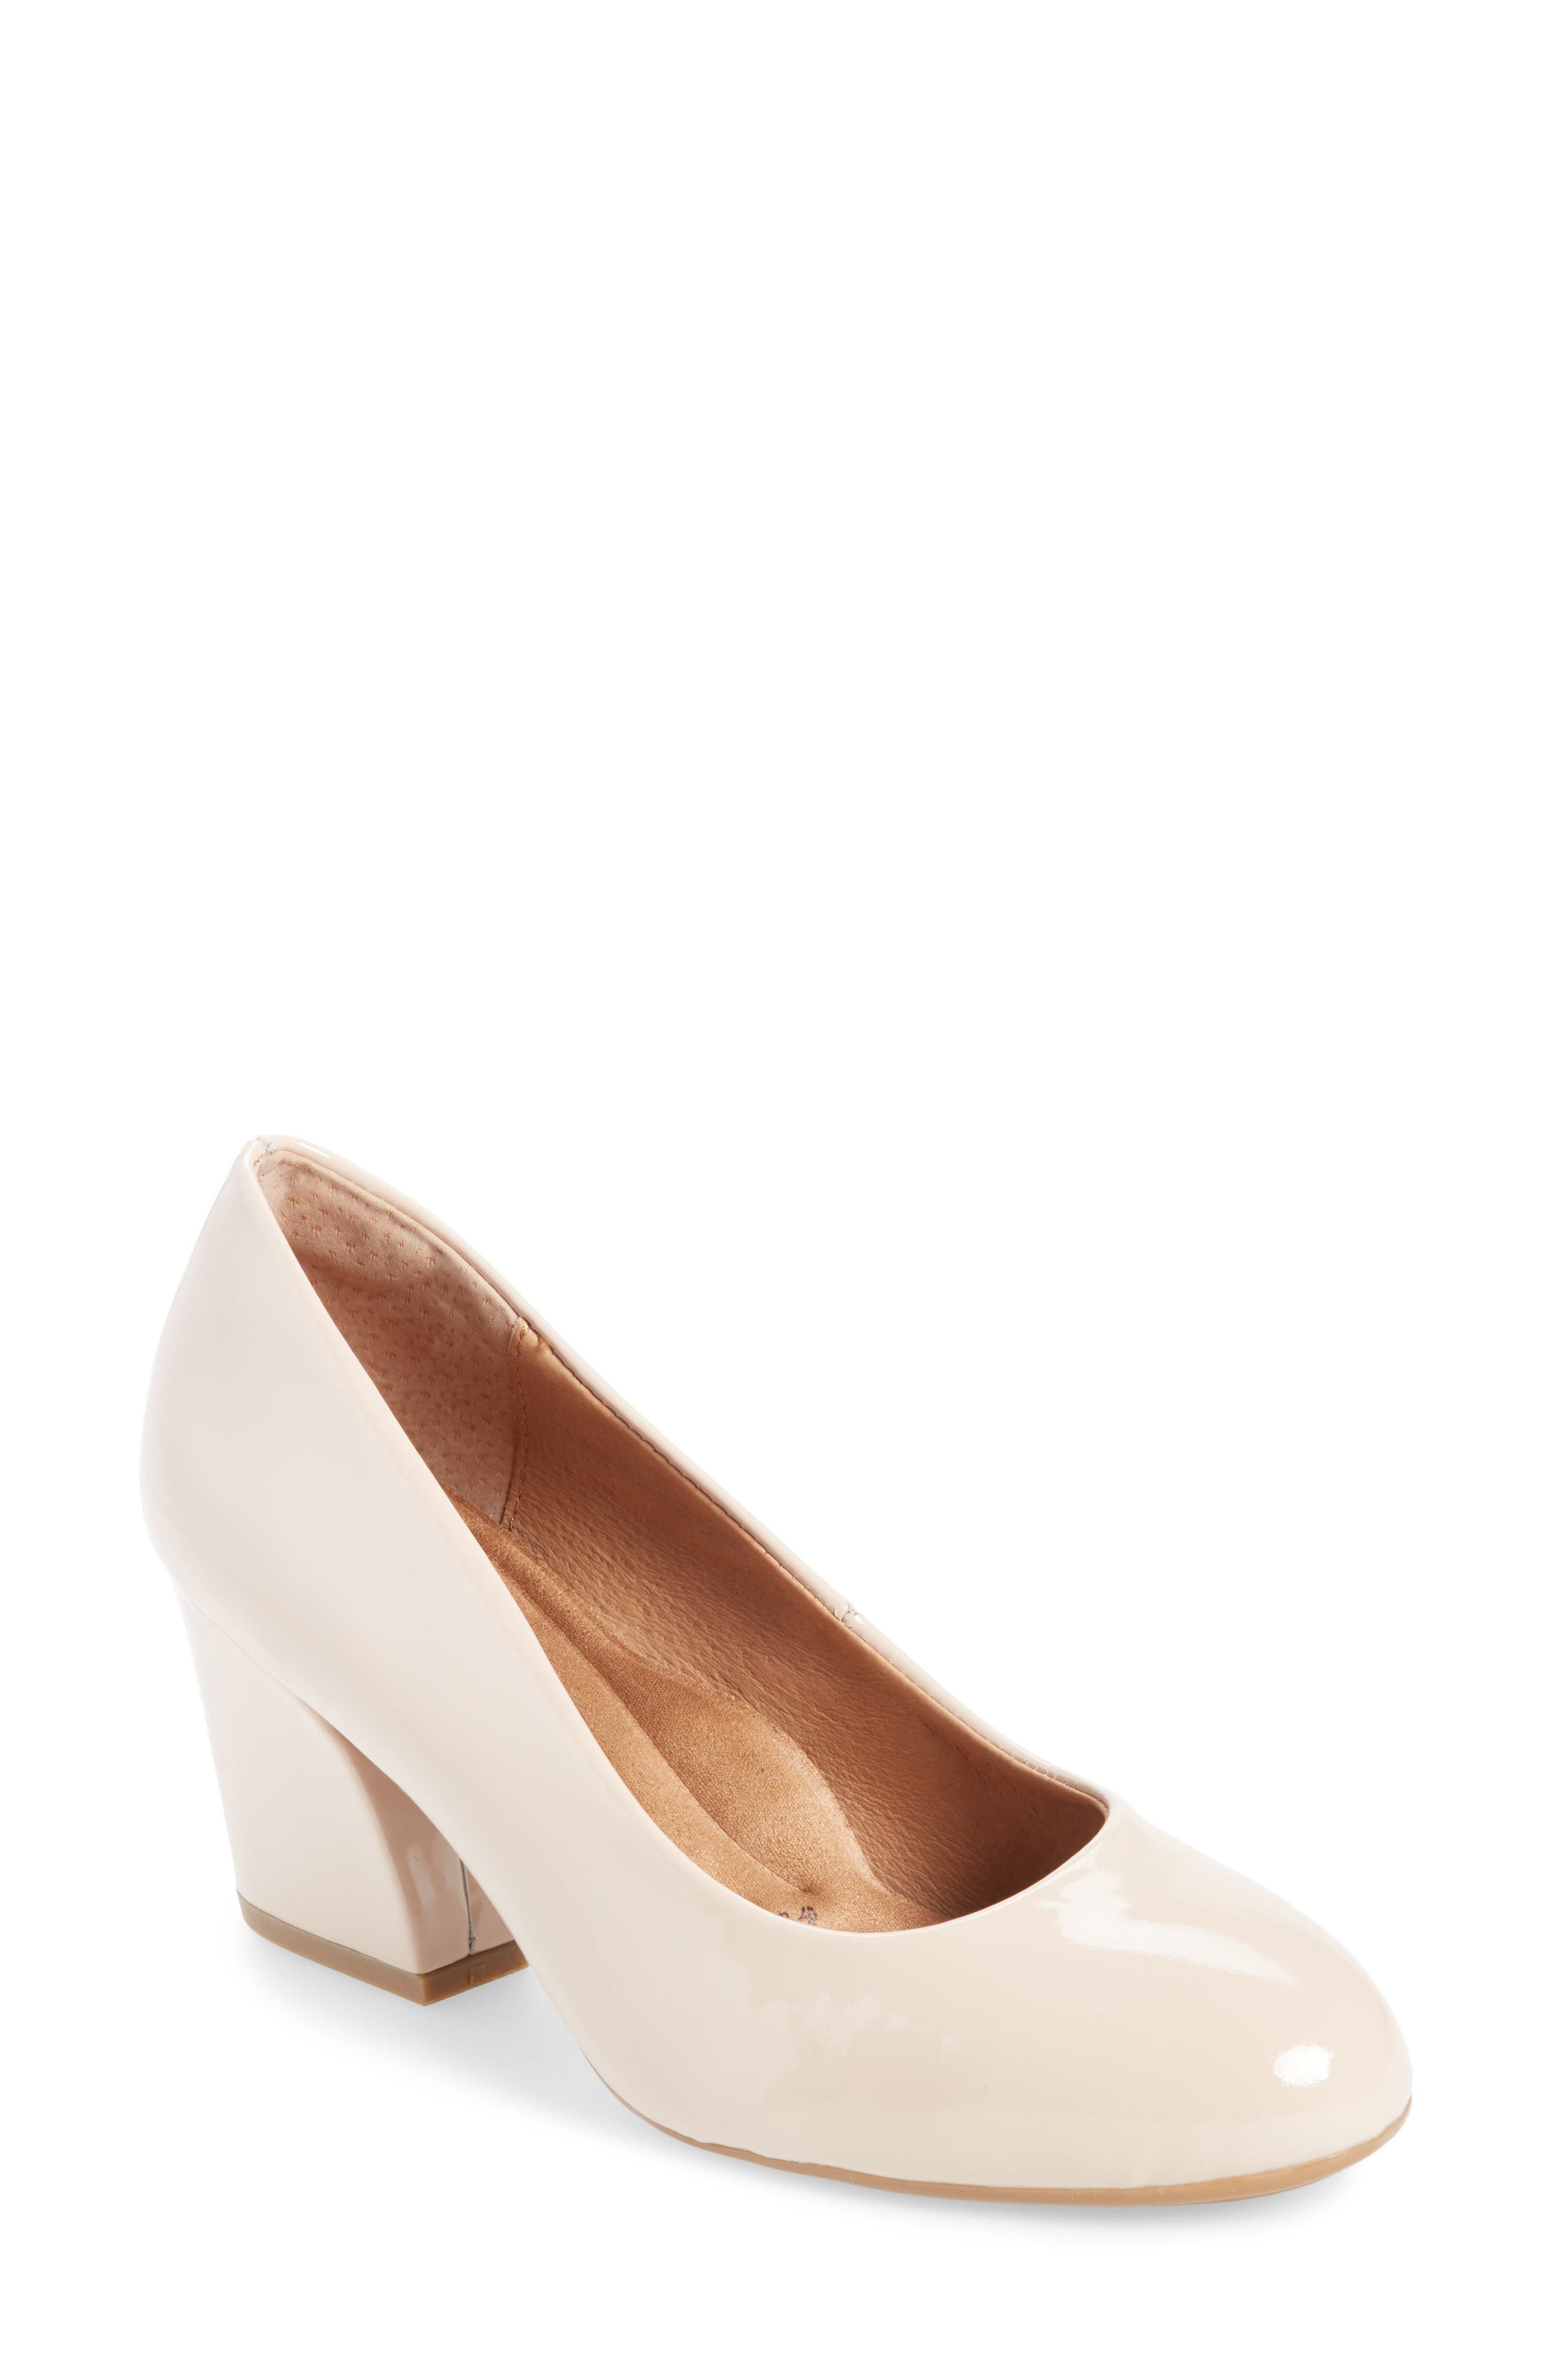 Tamira Pump,                             Main thumbnail 1, color,                             Nude Patent Leather